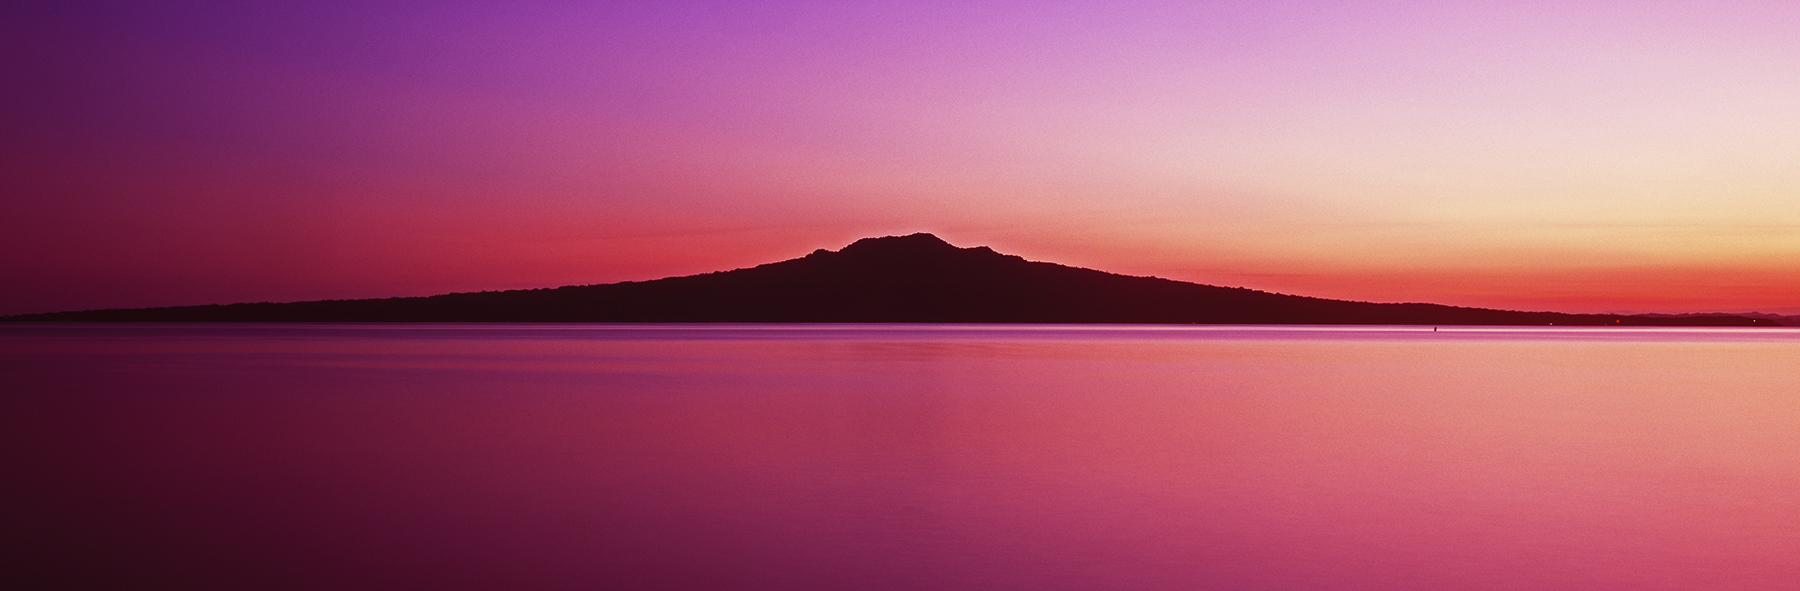 Rangitoto Island, Auckland, New Zealand. A Limited Edition Fine Art Landscape Photograph by Richard Hume